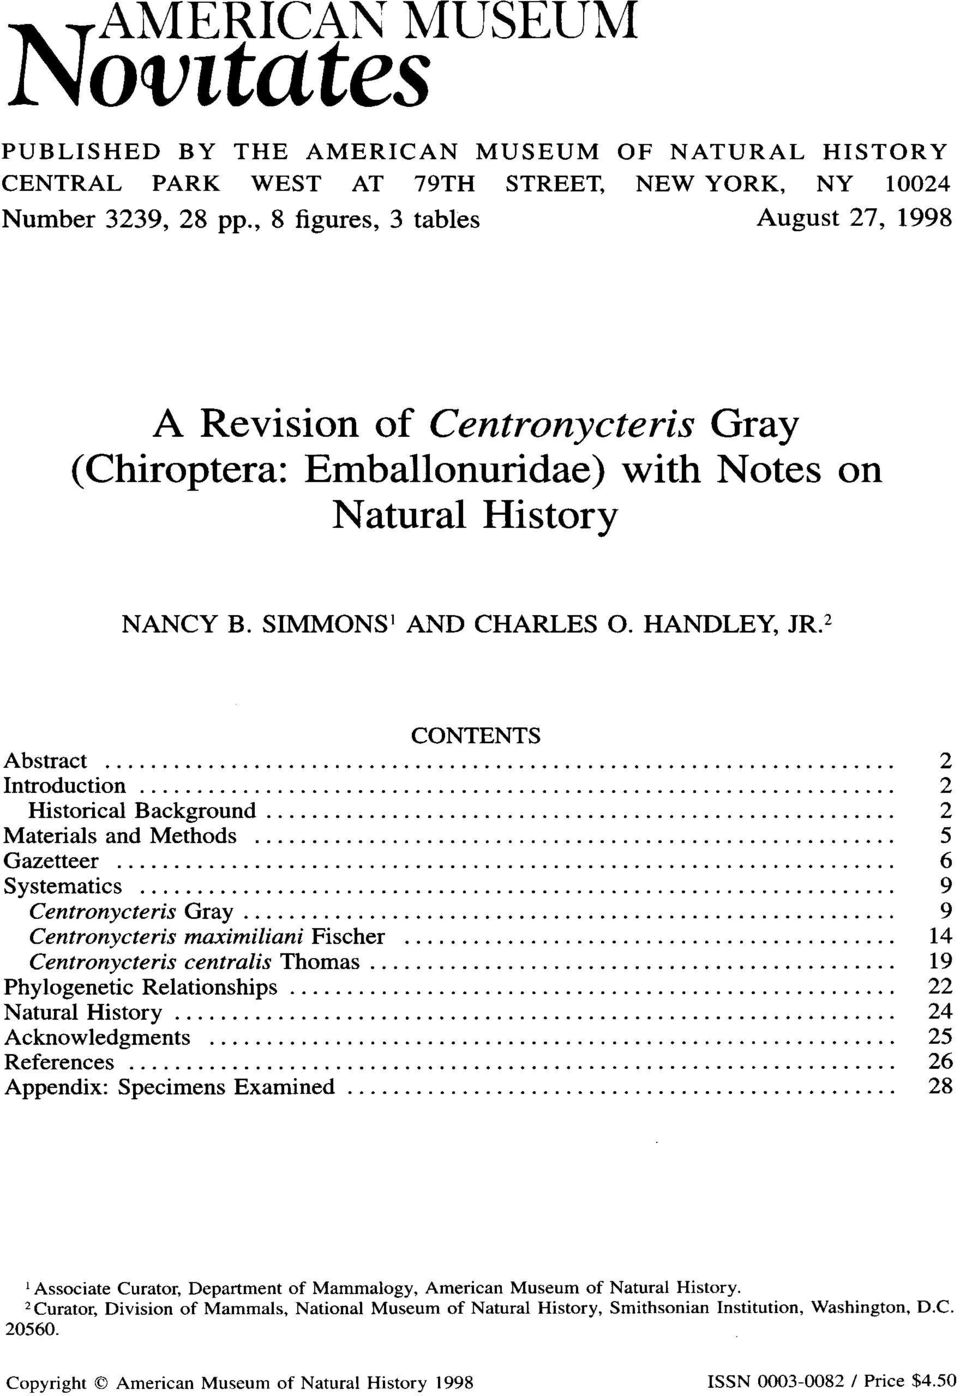 .. 2 Introduction... 2 Historical Background...... 2 Materials and Methods...... 5 Gazetteer... 6 Systematics... 9 Centronycteris Gray...... 9 Centronycteris maximiliani Fischer.